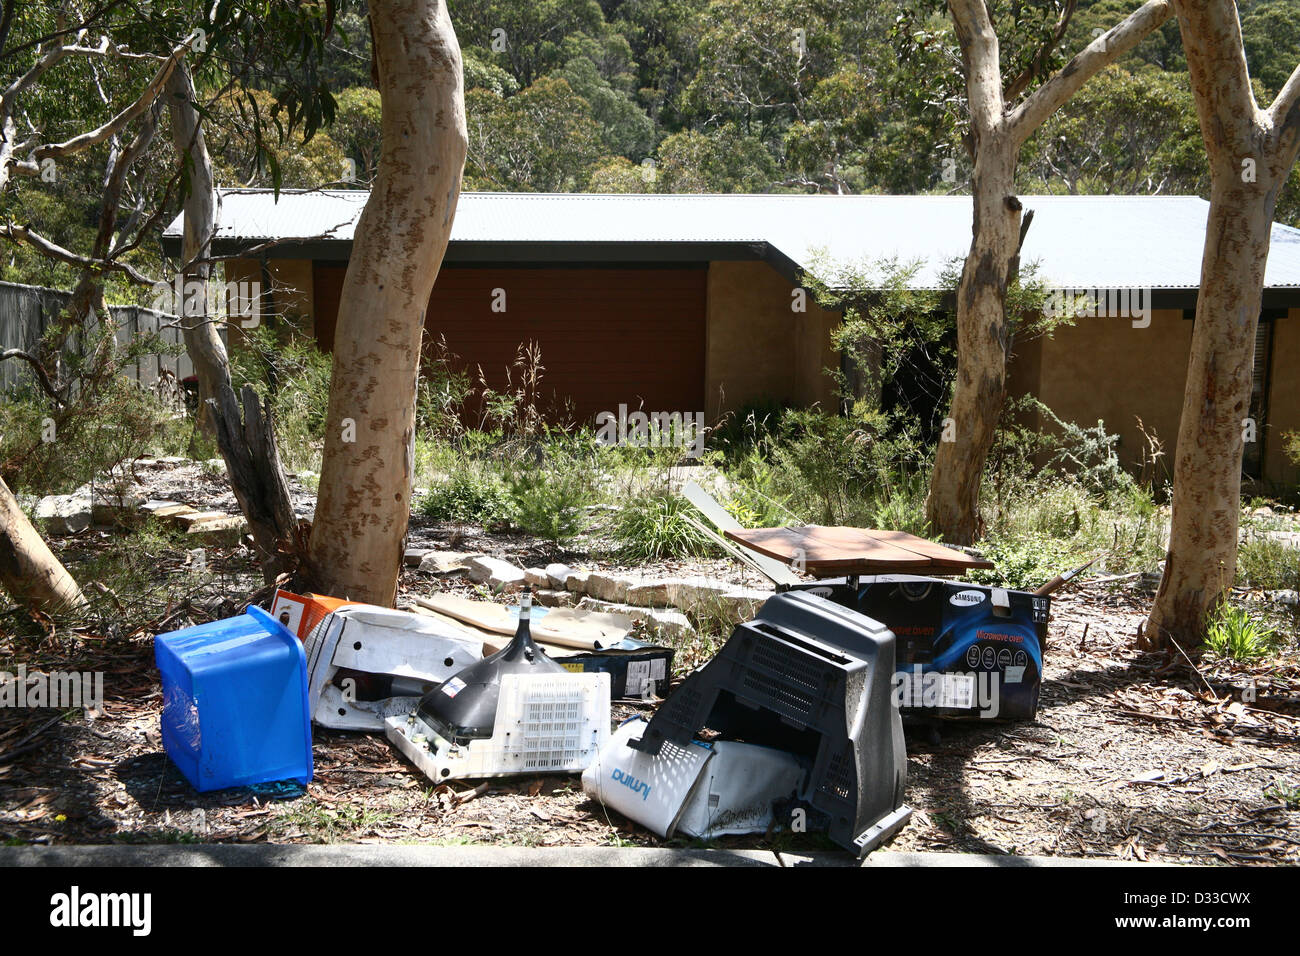 Household rubbish for recycling and landfill Australia - Stock Image